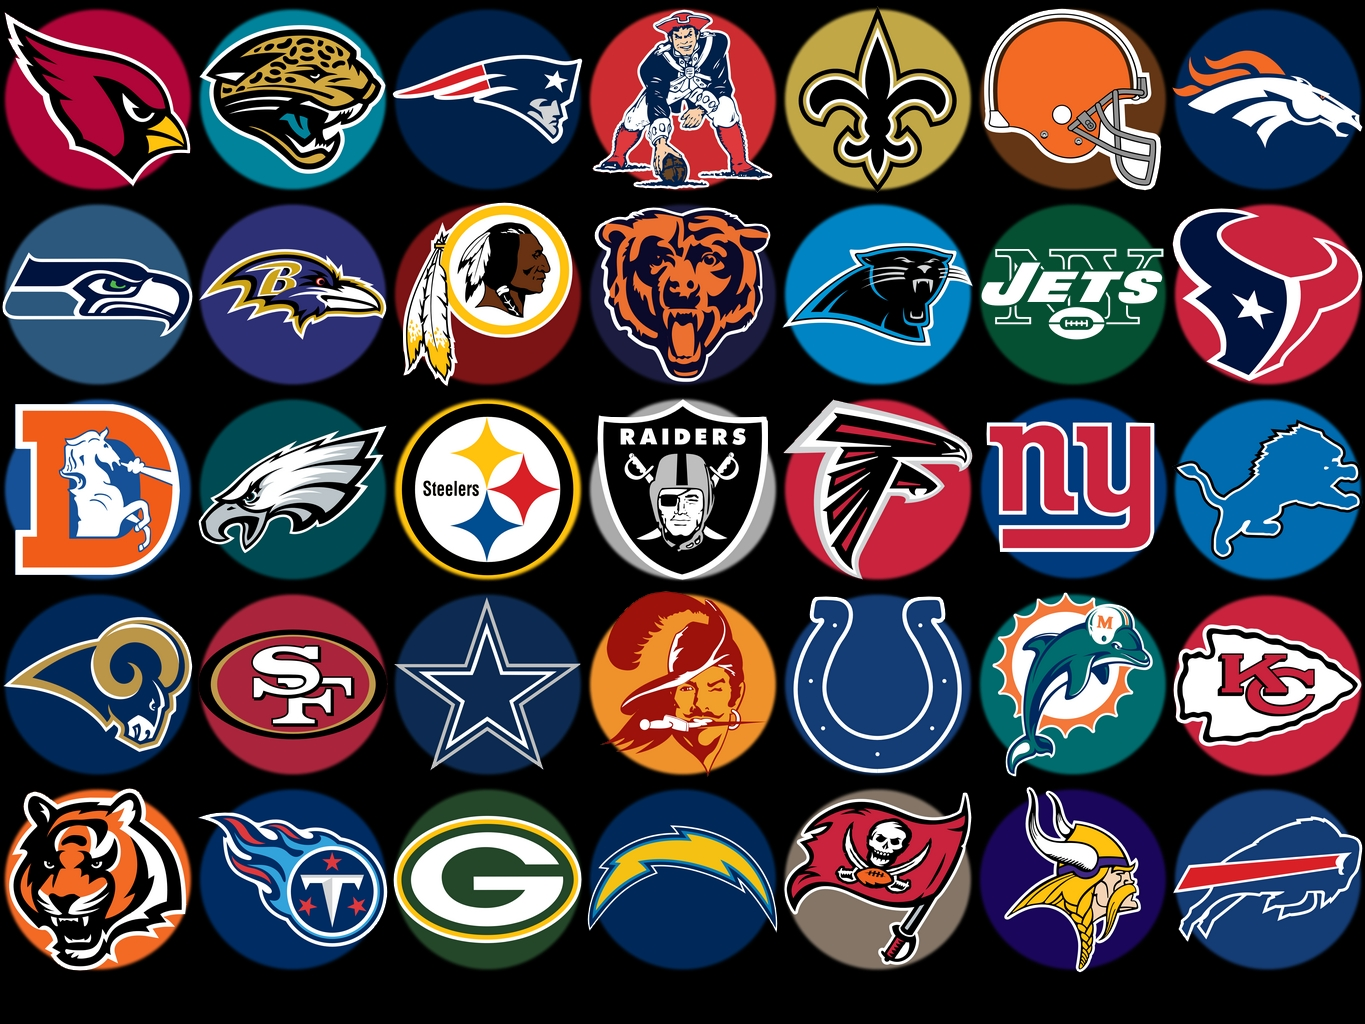 All NFL Logos clipart free image